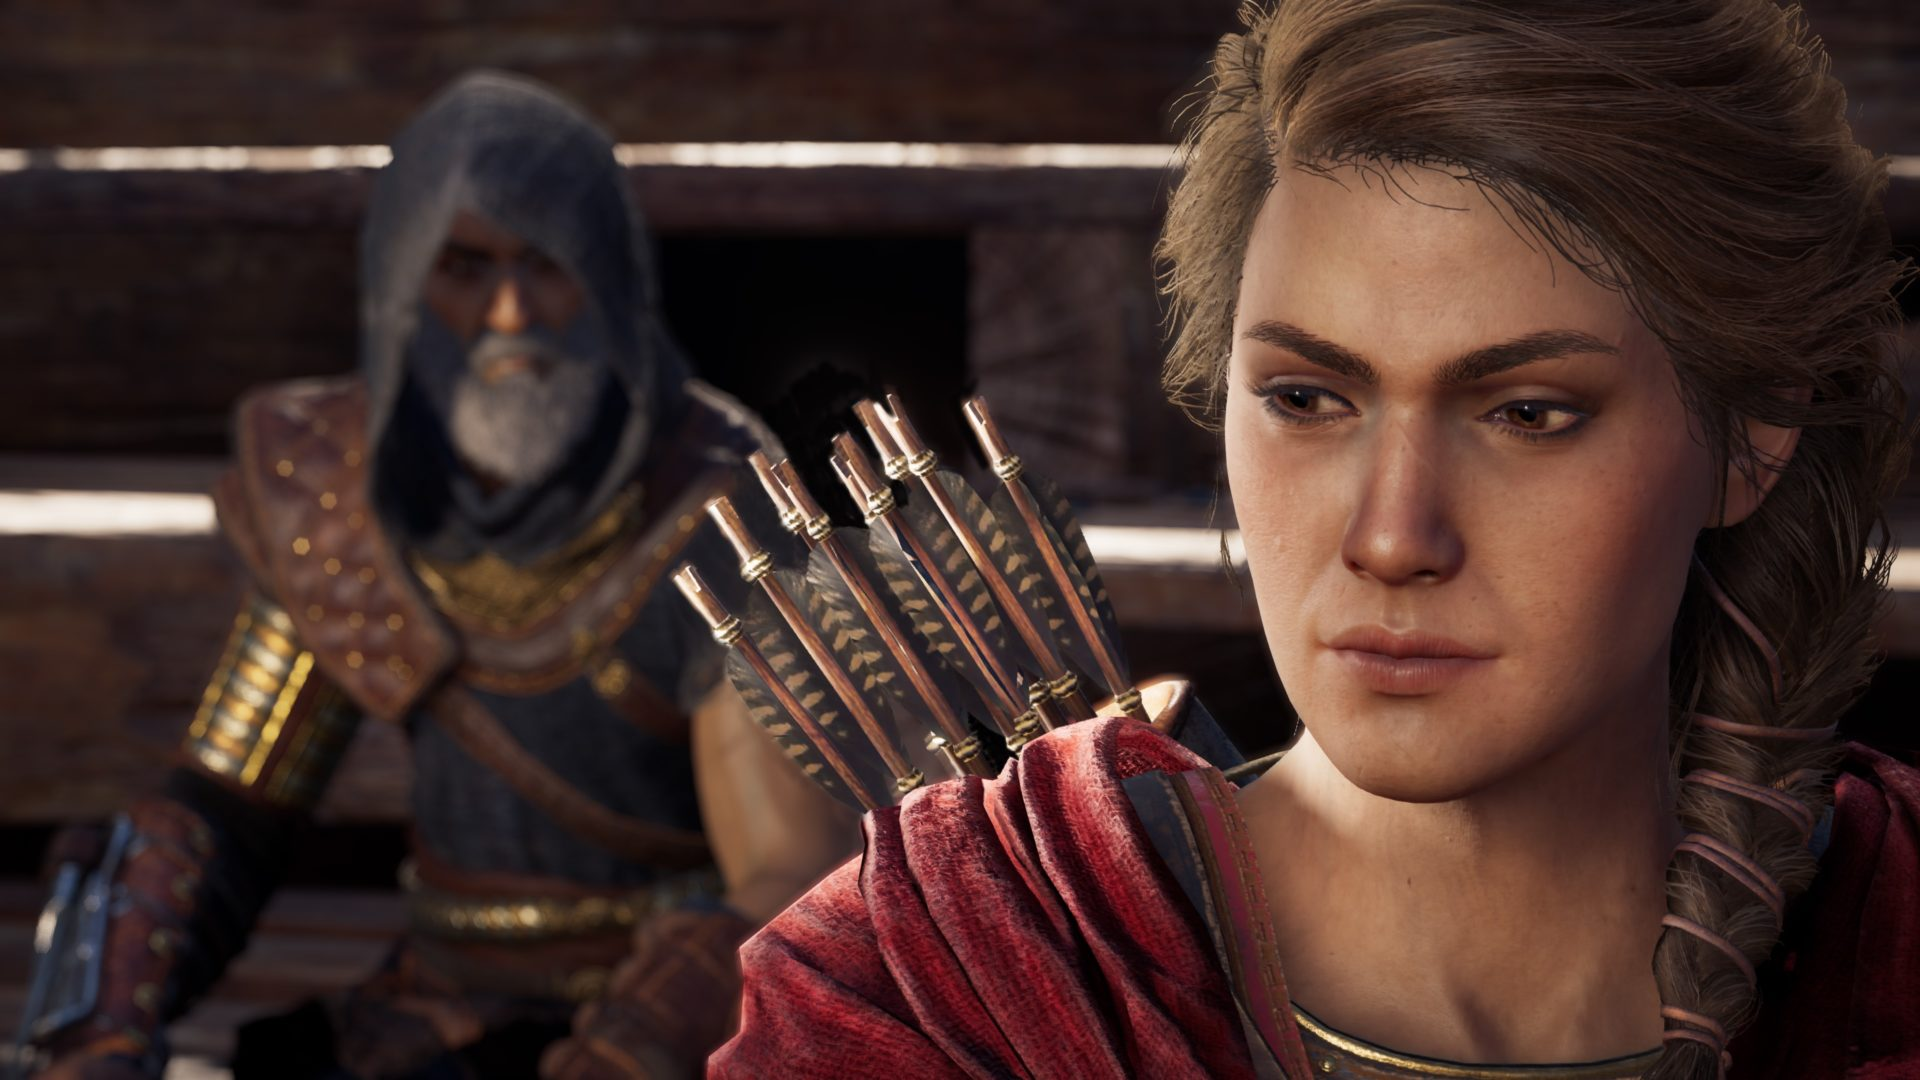 Kassandra and Darius